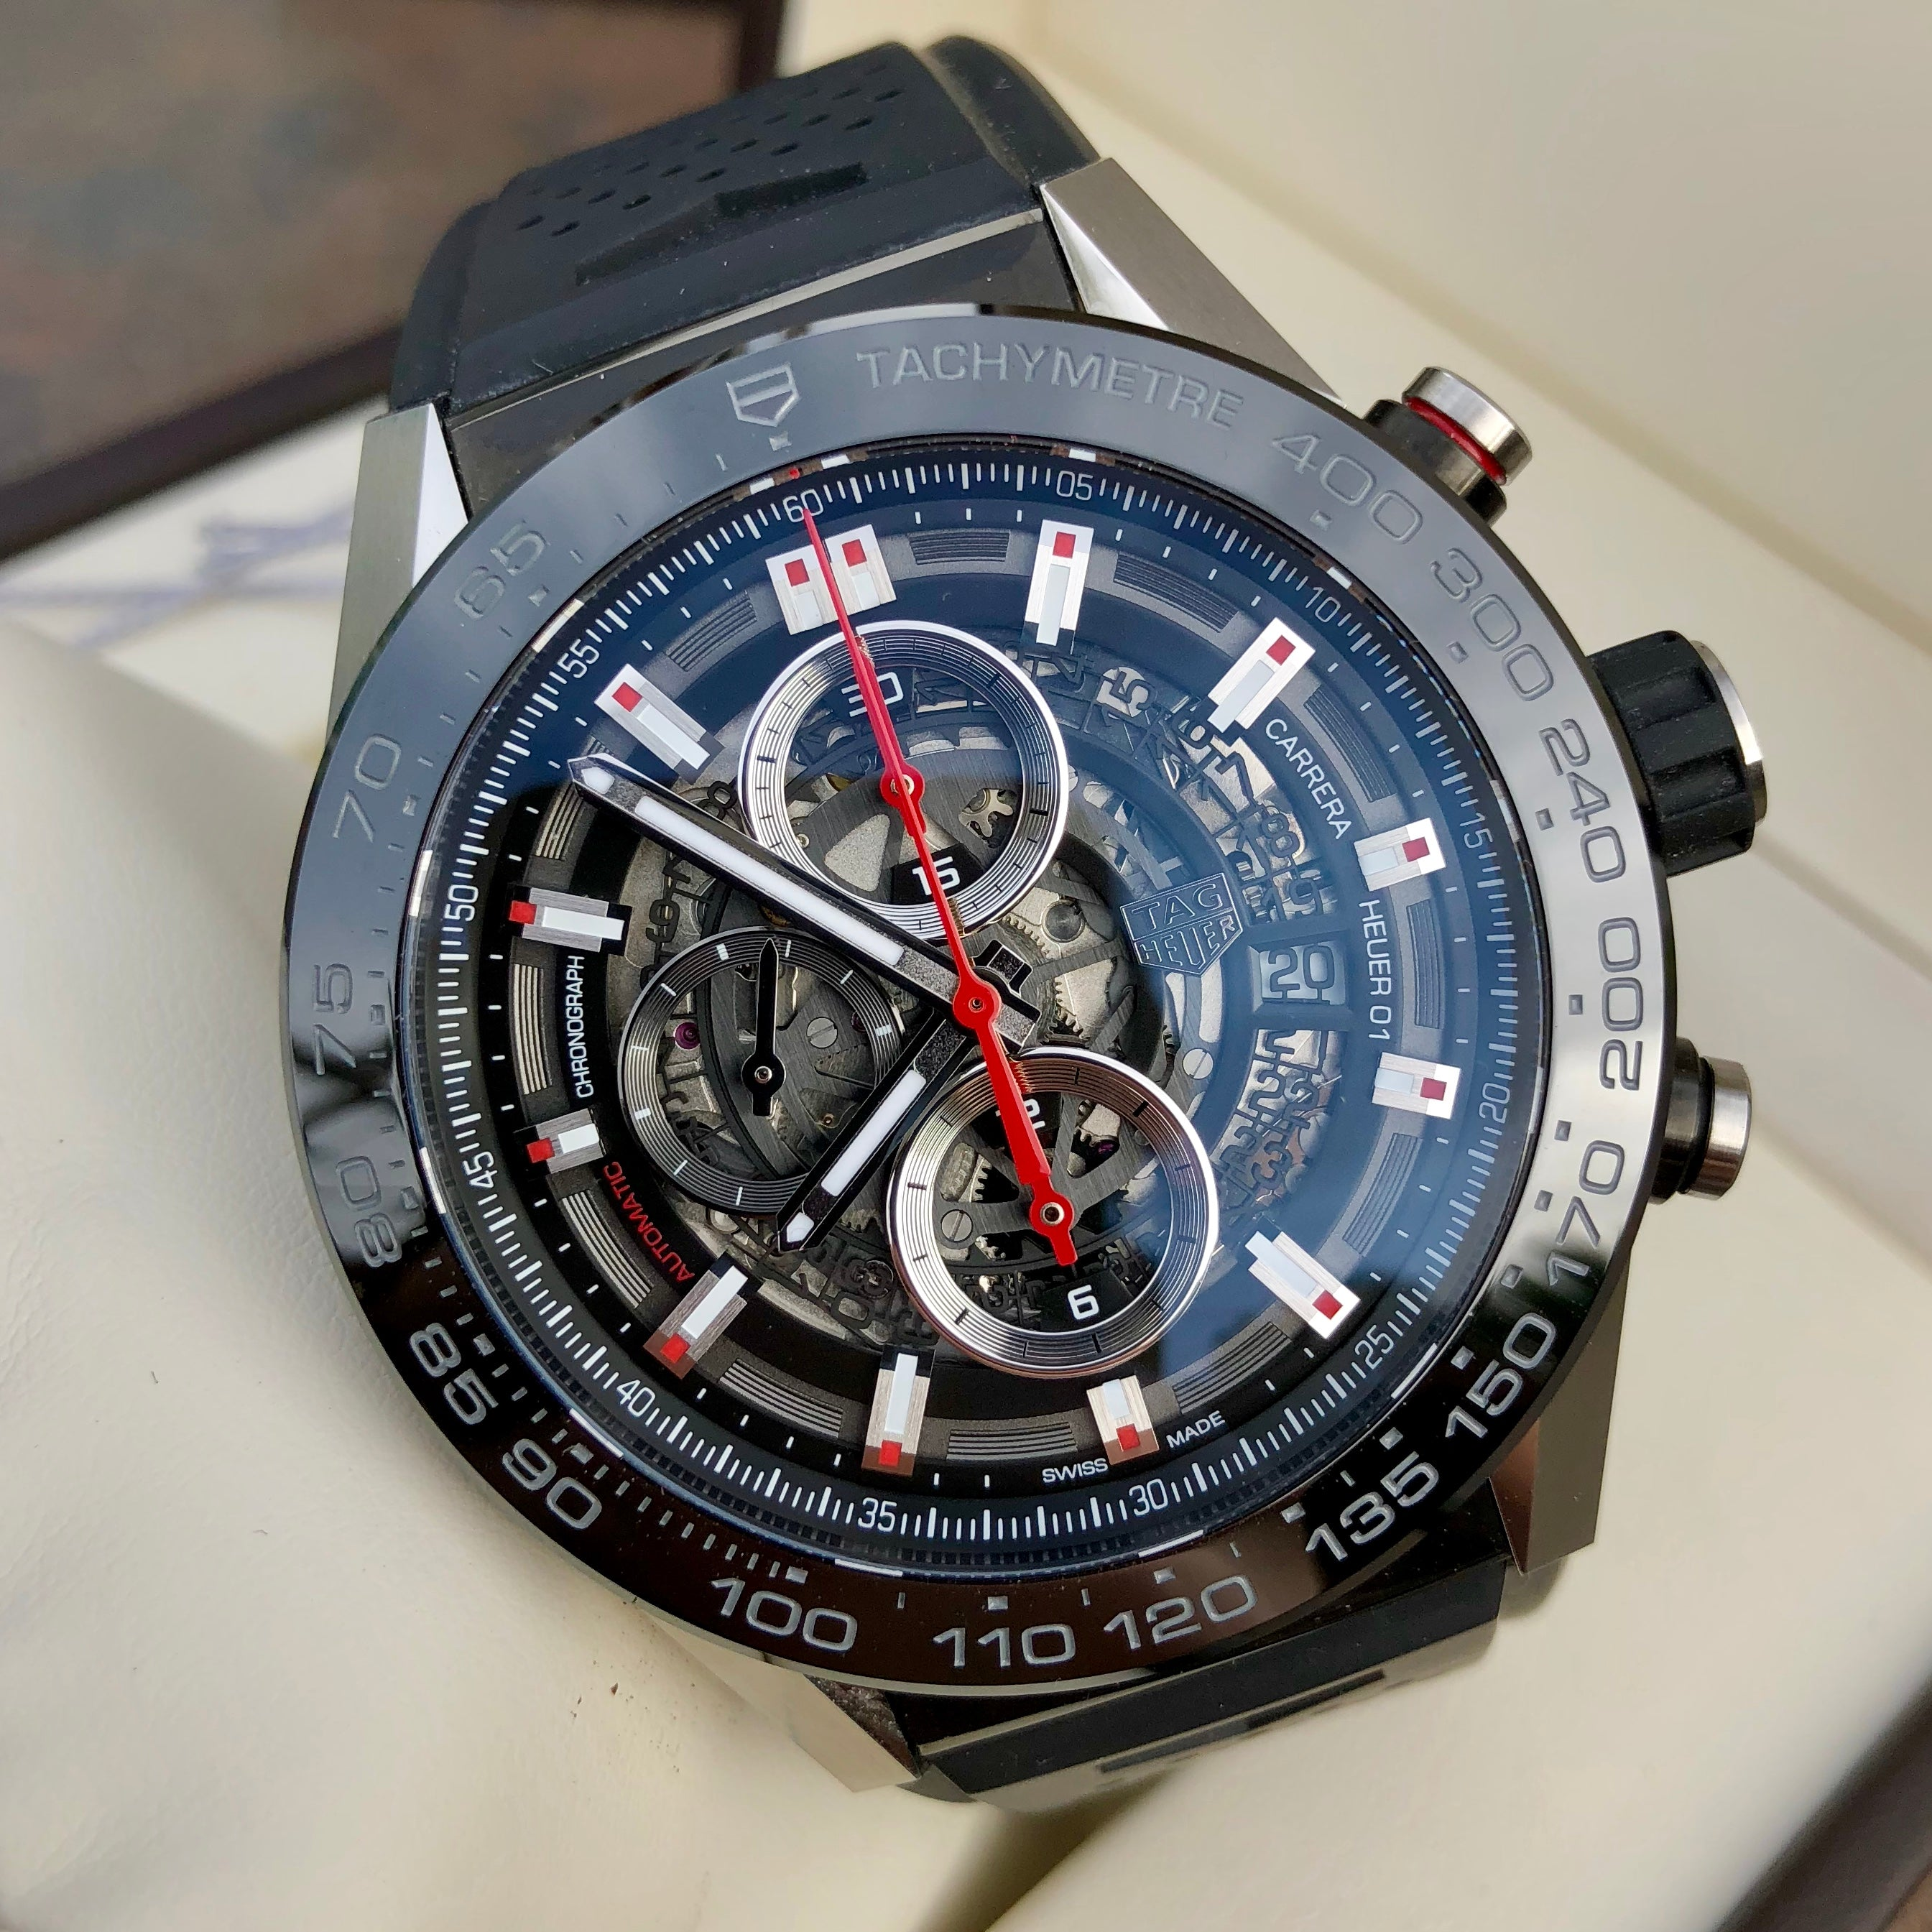 Tag Heuer Carrera CAR2A1Z Calibre Heuer 01 Automatic  Skeleton Dial Chronograph Wristwatch - Hashtag Watch Company